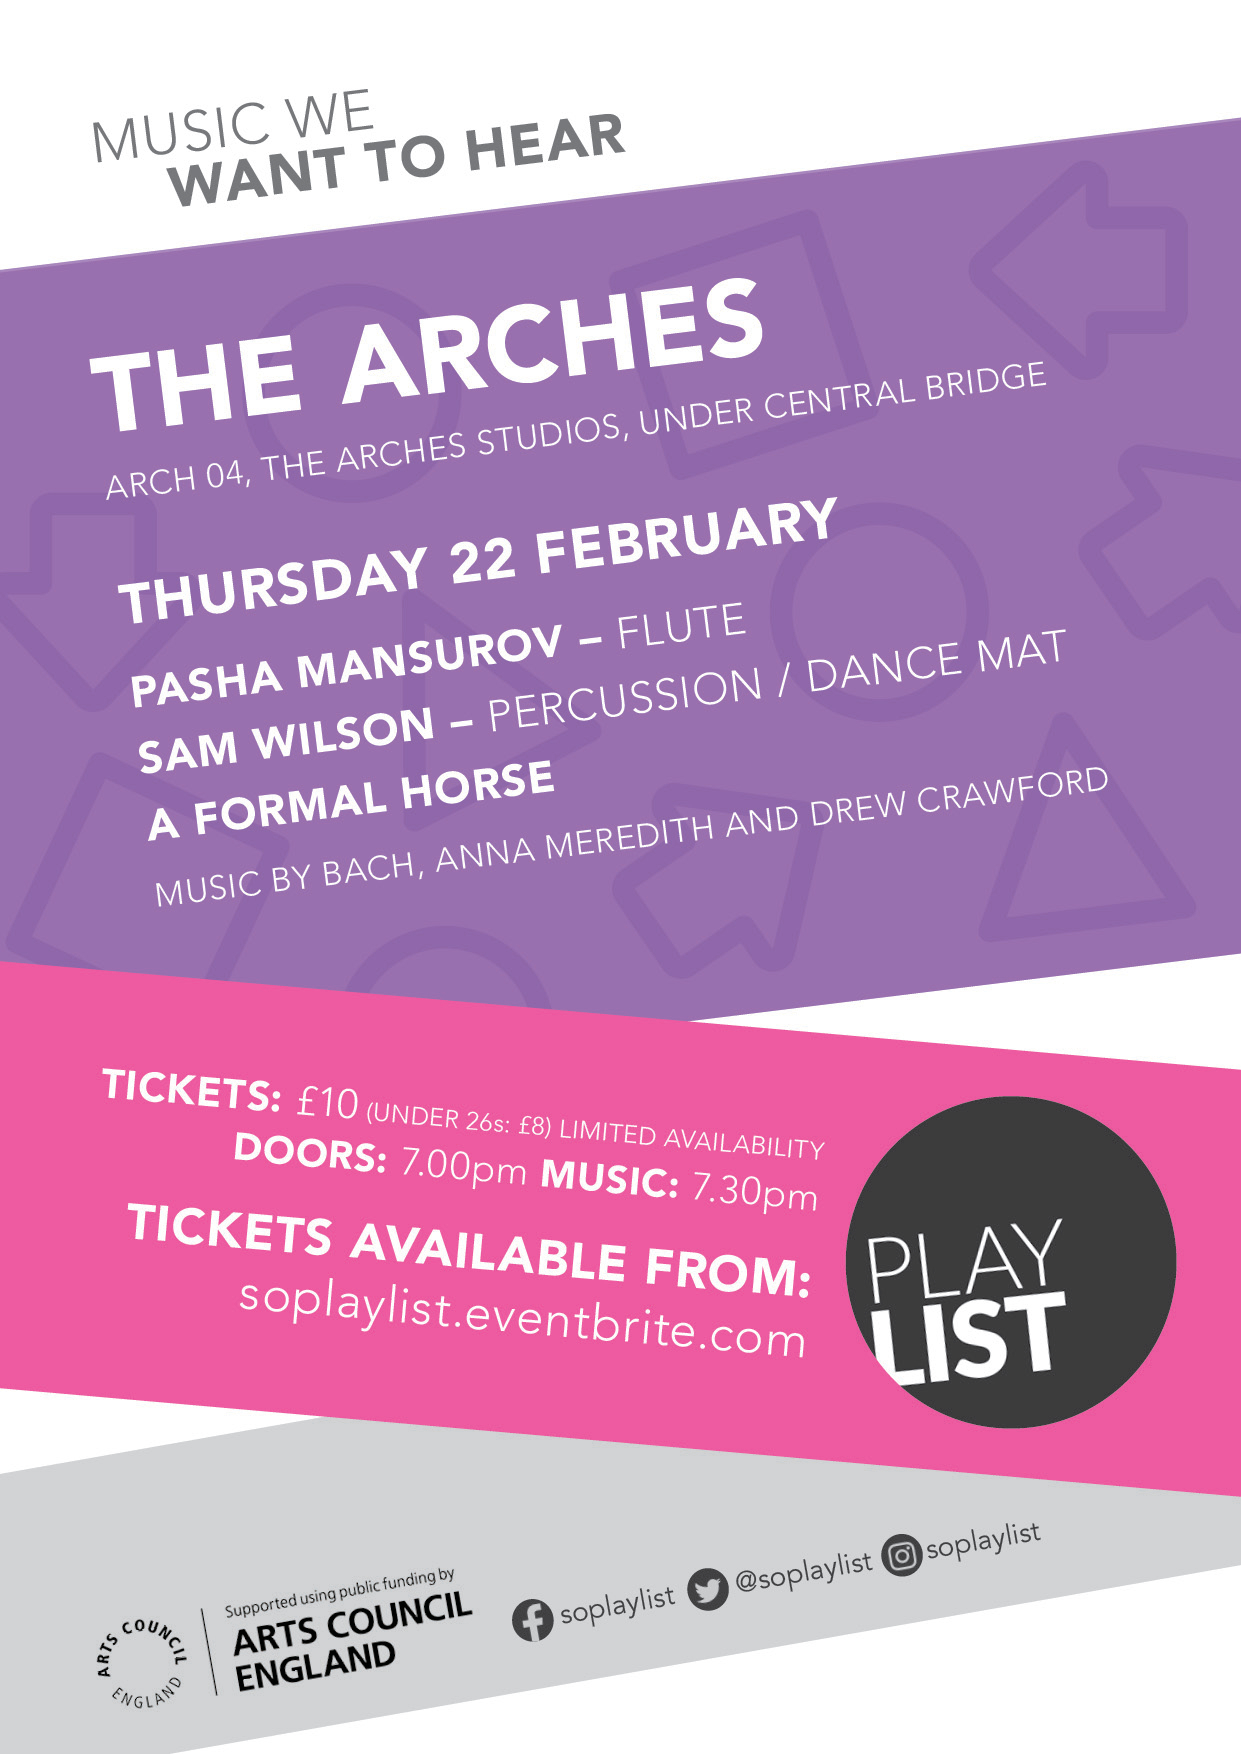 PLAYLIST: The Arches